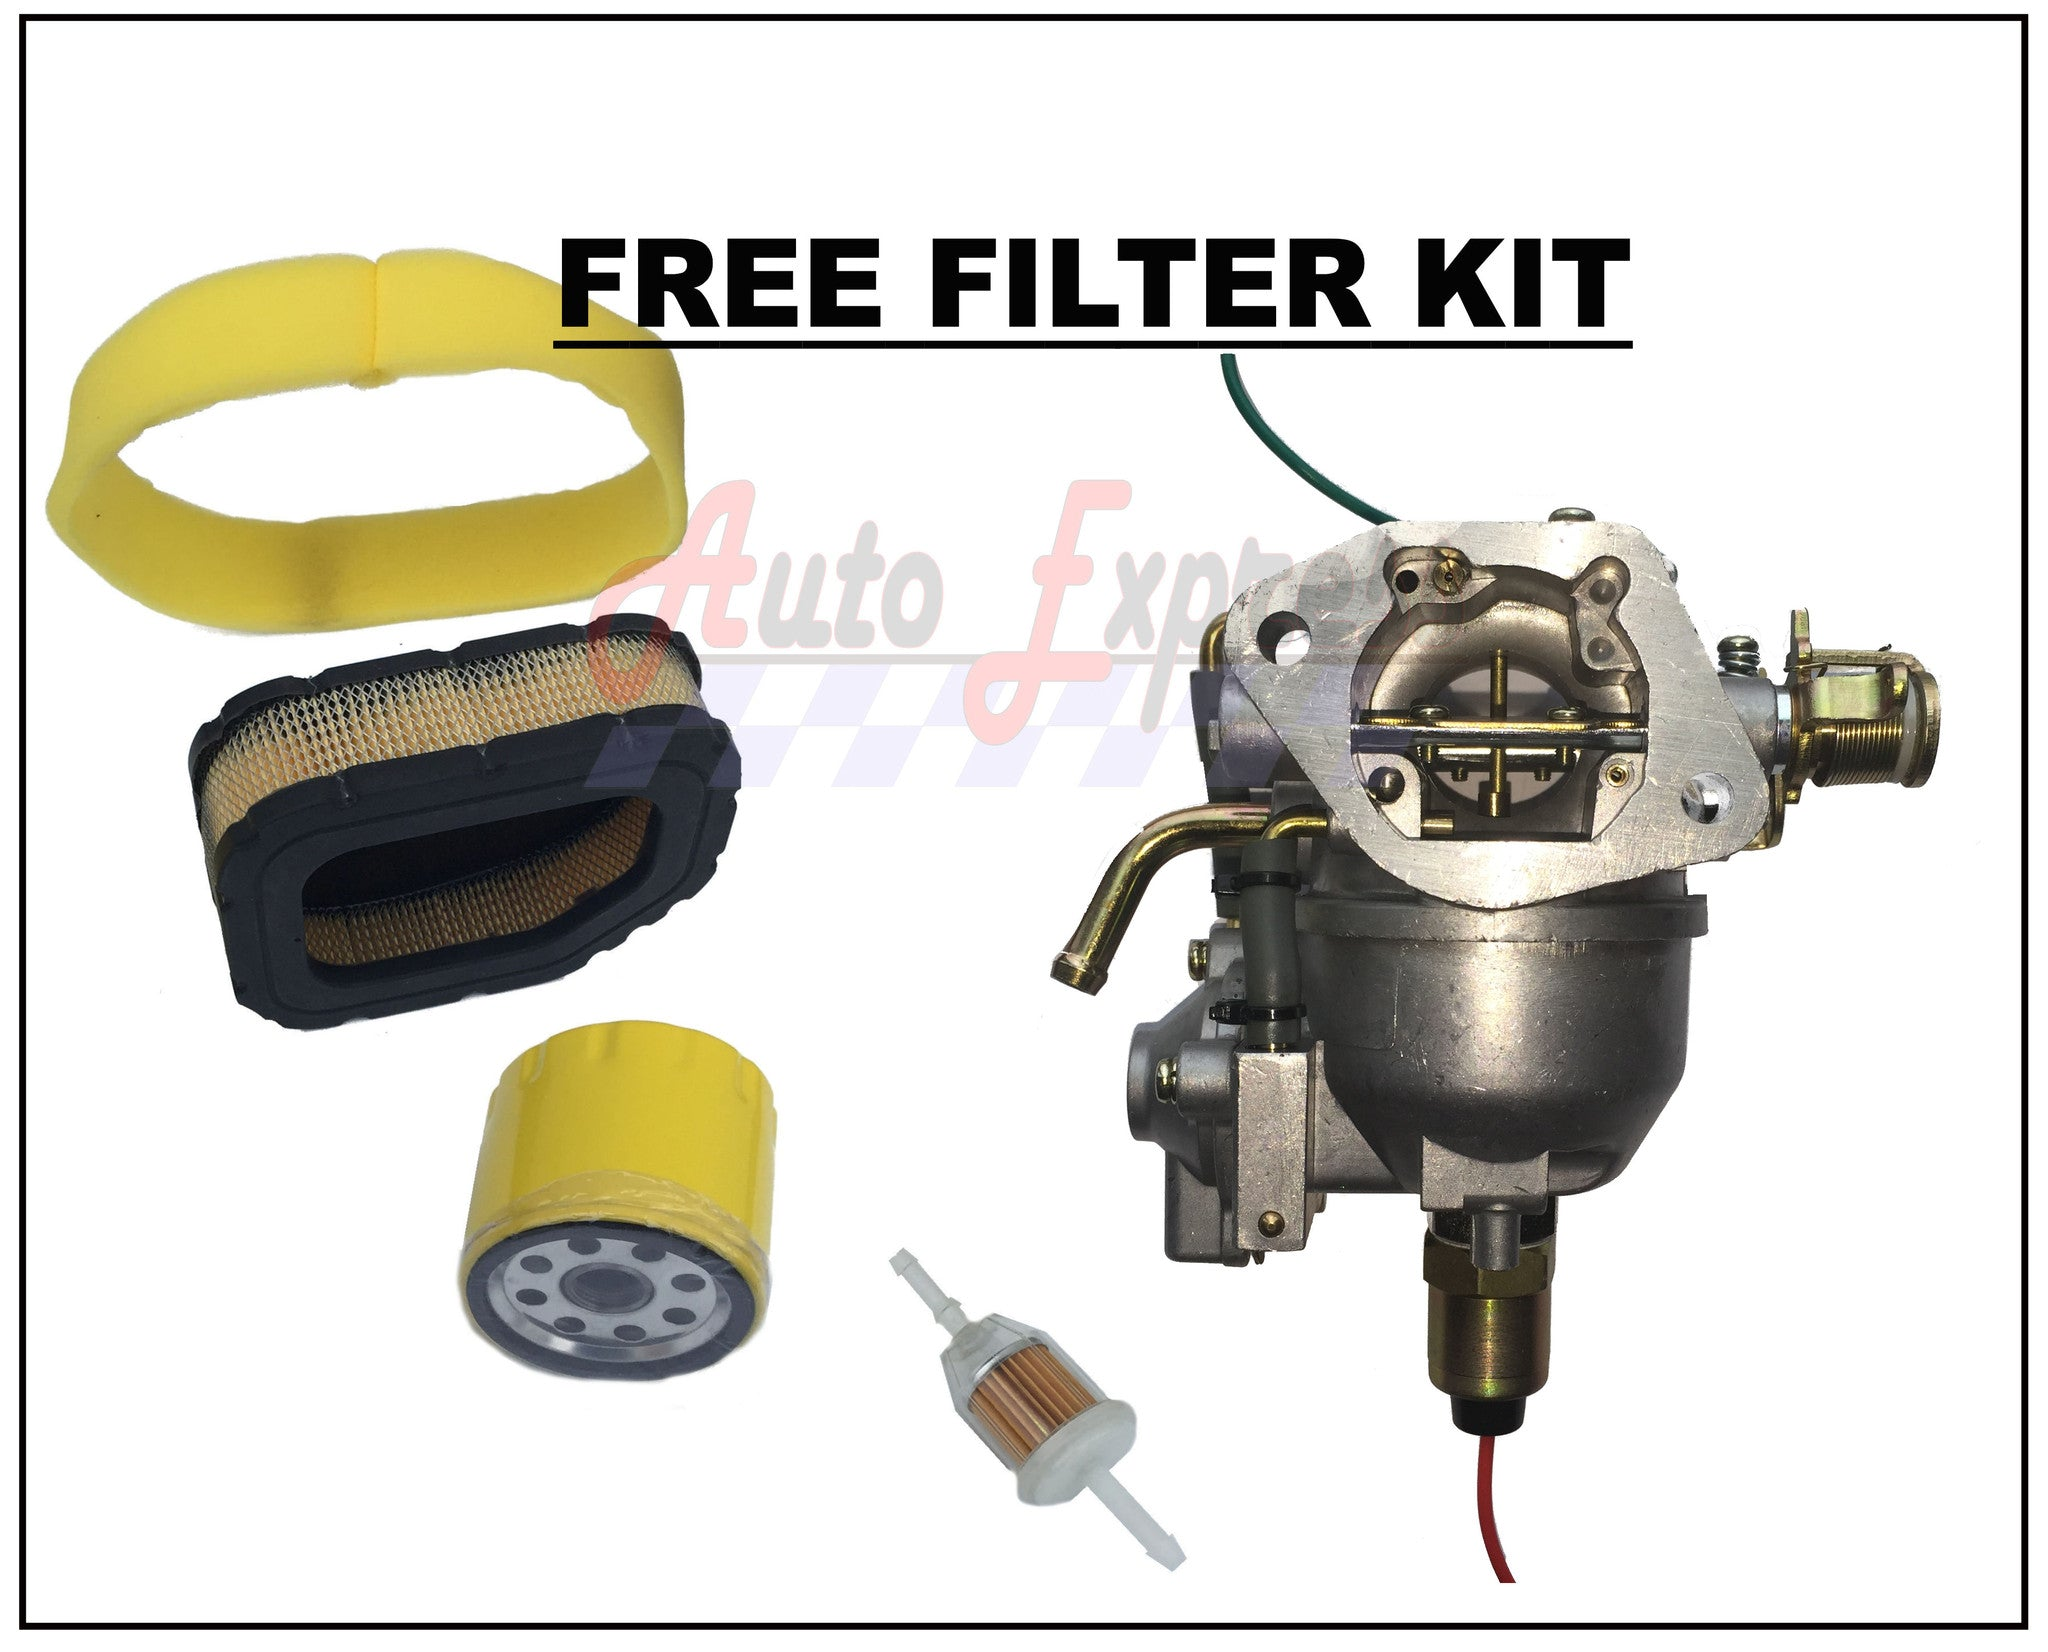 Carburetor Fits TORO Debris Blower 800 Carb Pump Air Oil Fuel Filters Nikki - AE-Power